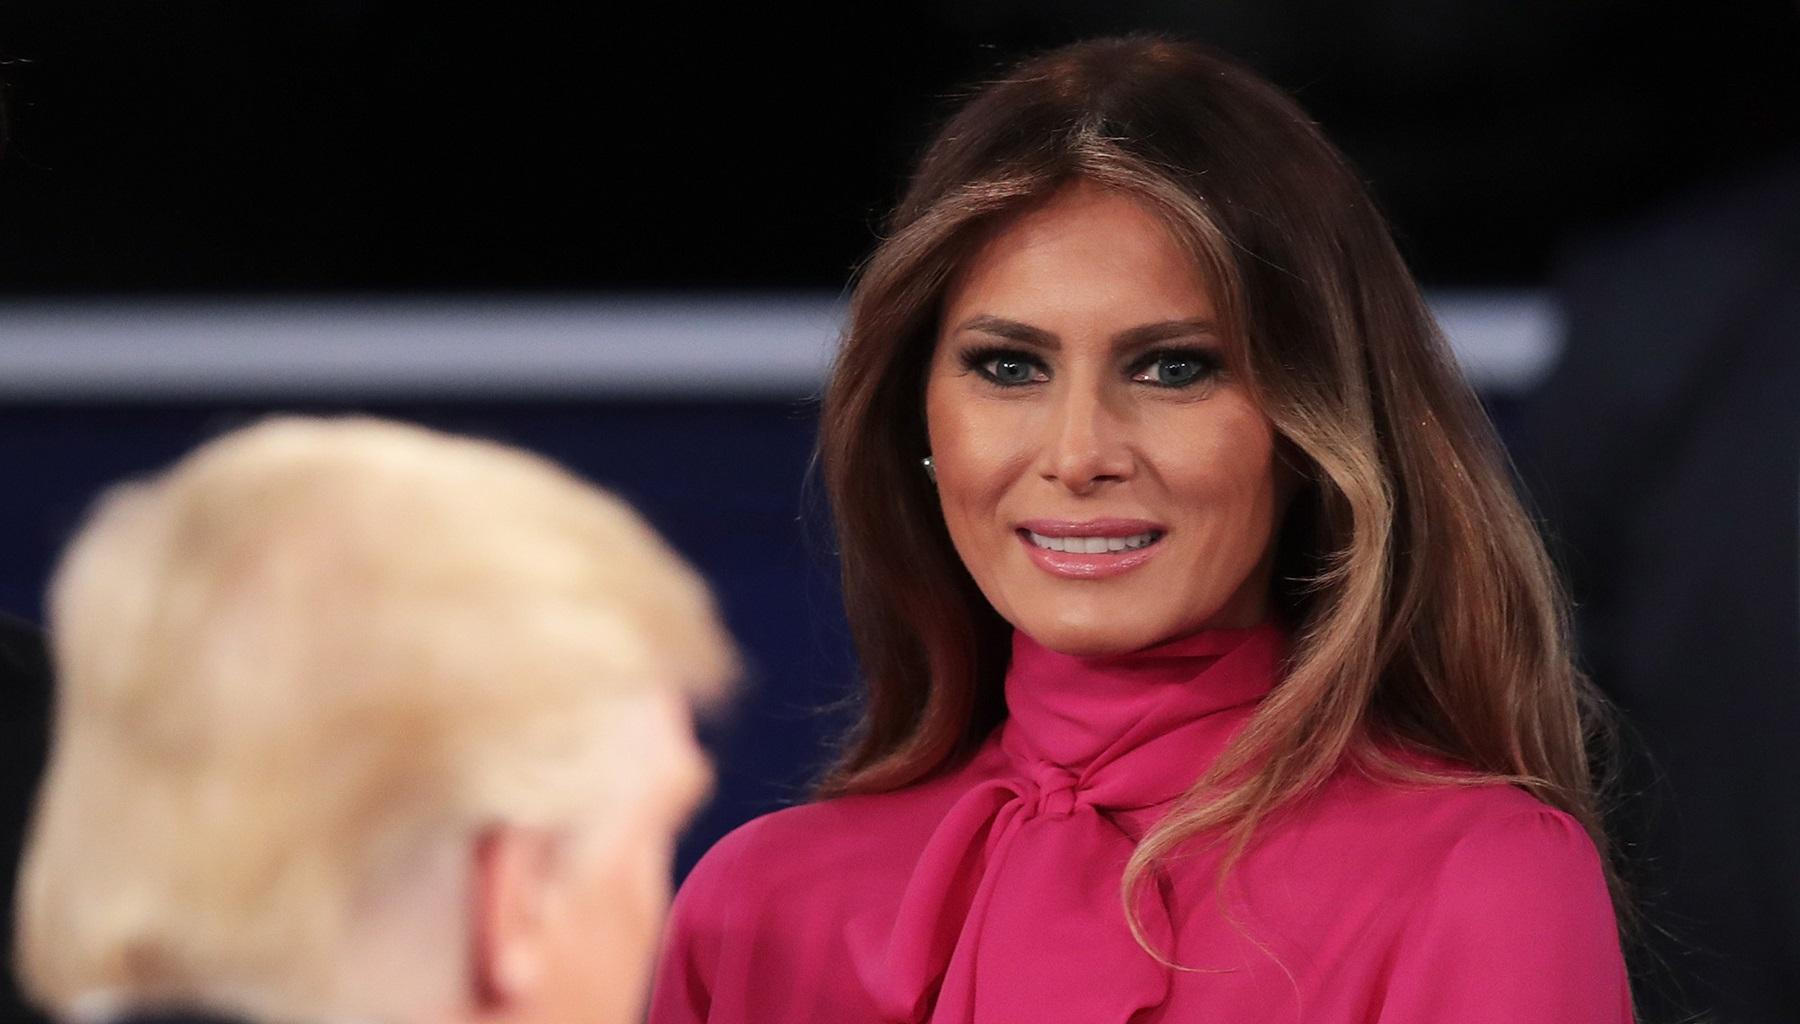 Melania Trump Makes Bold Fashion Statement In New Photos, Even President Donald Trump Was Impressed